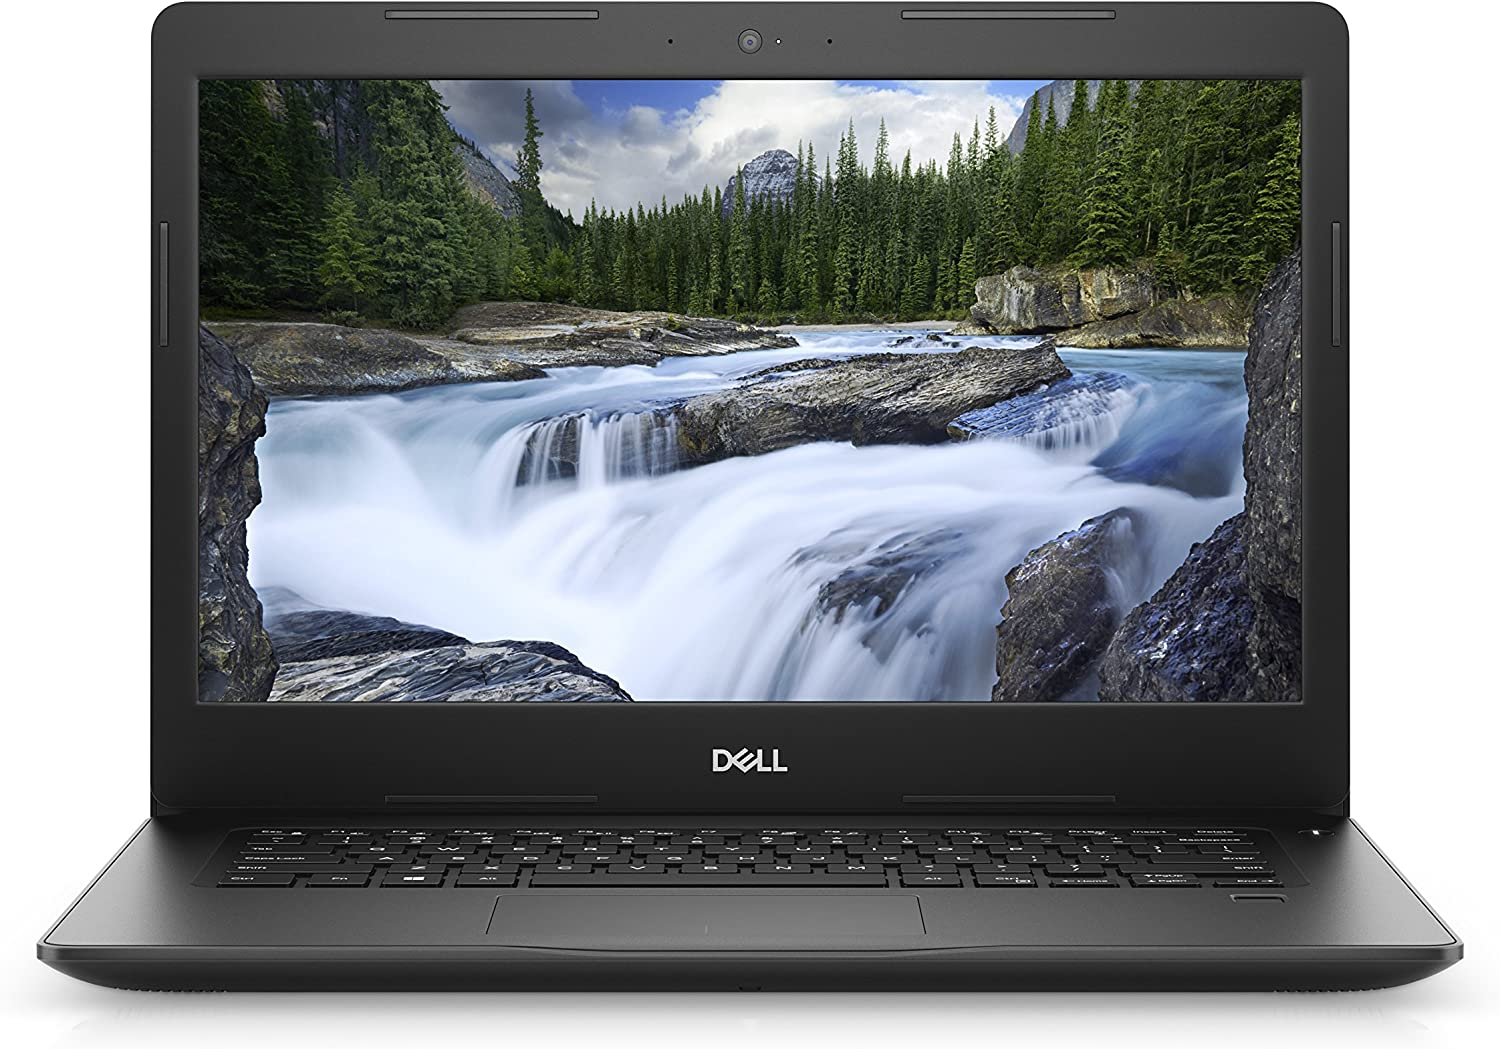 "Dell Latitude 3490 14"" 1366 X 768 LCD Laptop with Intel Core i3-6006U Dual-Core 2 GHz, 4GB DDR4 SDRAM, 500GB HDD"